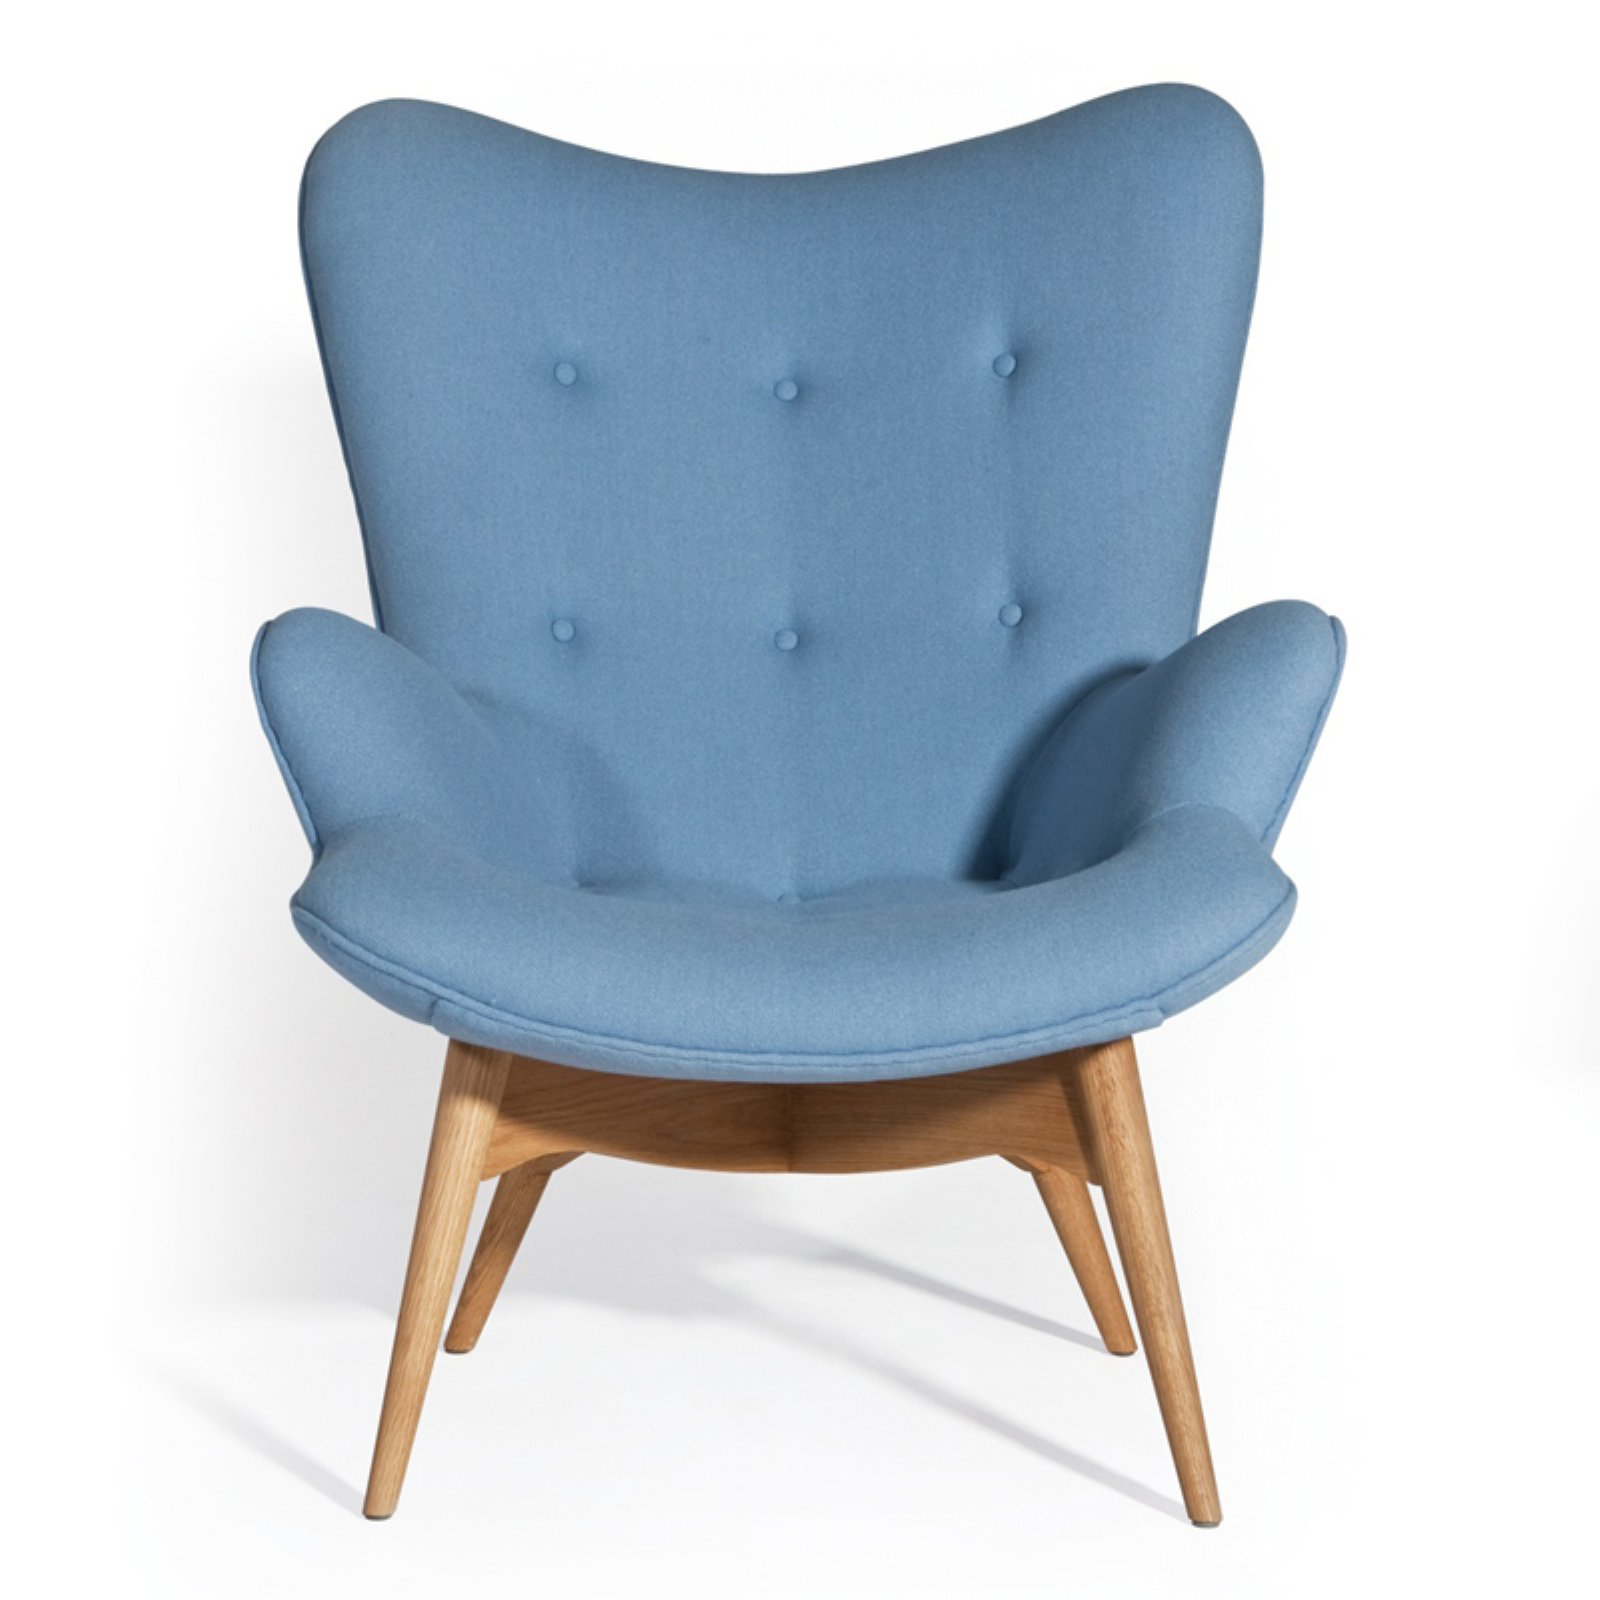 Aeon Furniture Jules Upholstered Lounge Chair